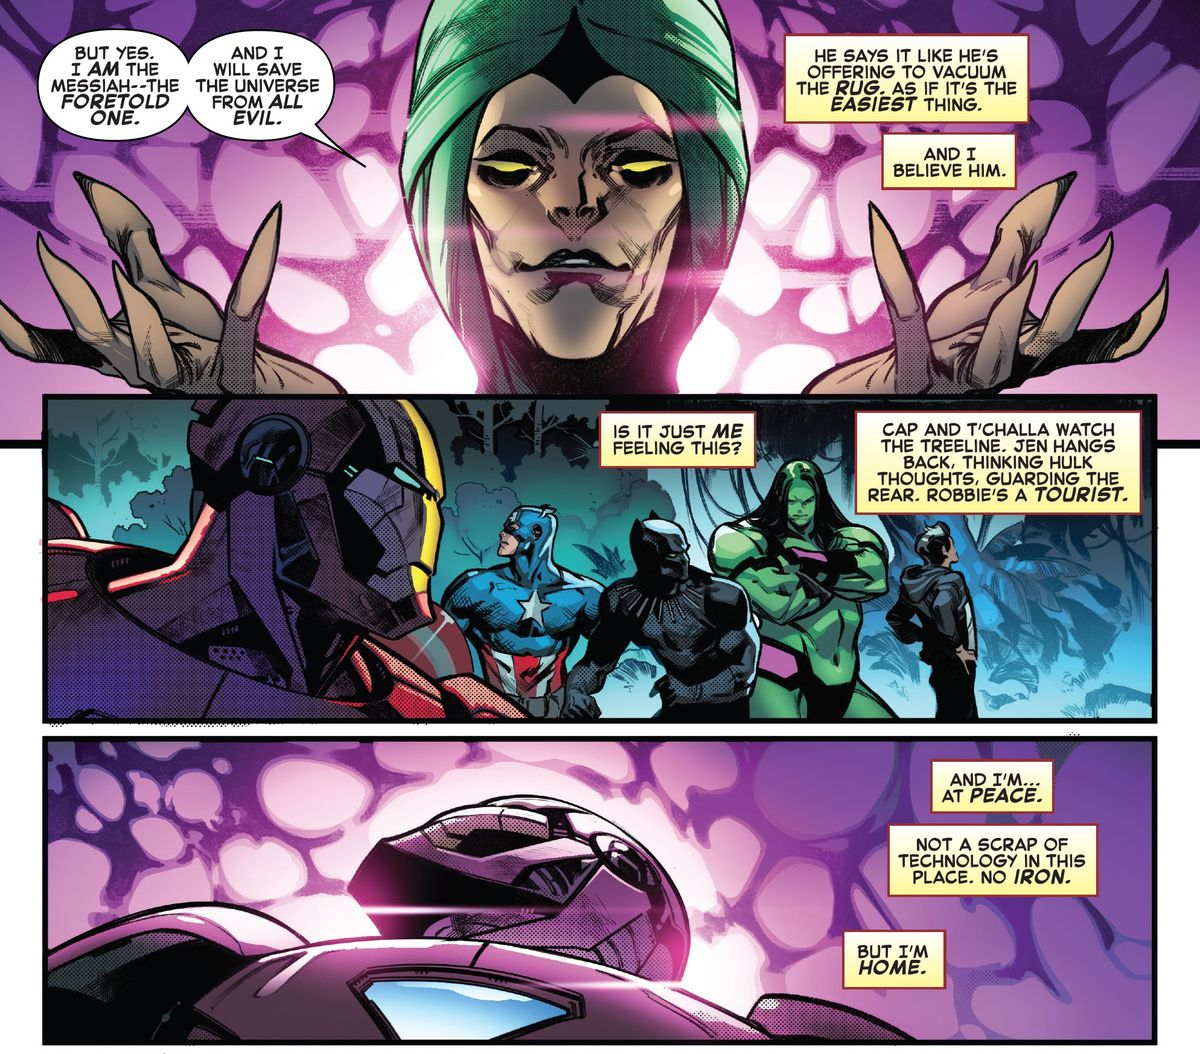 The celestial messiah Sequoia speaks to the Avengers on the Blue Area of the moon, and Iron Man finds it oddly soothing, in Avengers Empyre #0, Marvel Comics (2020).